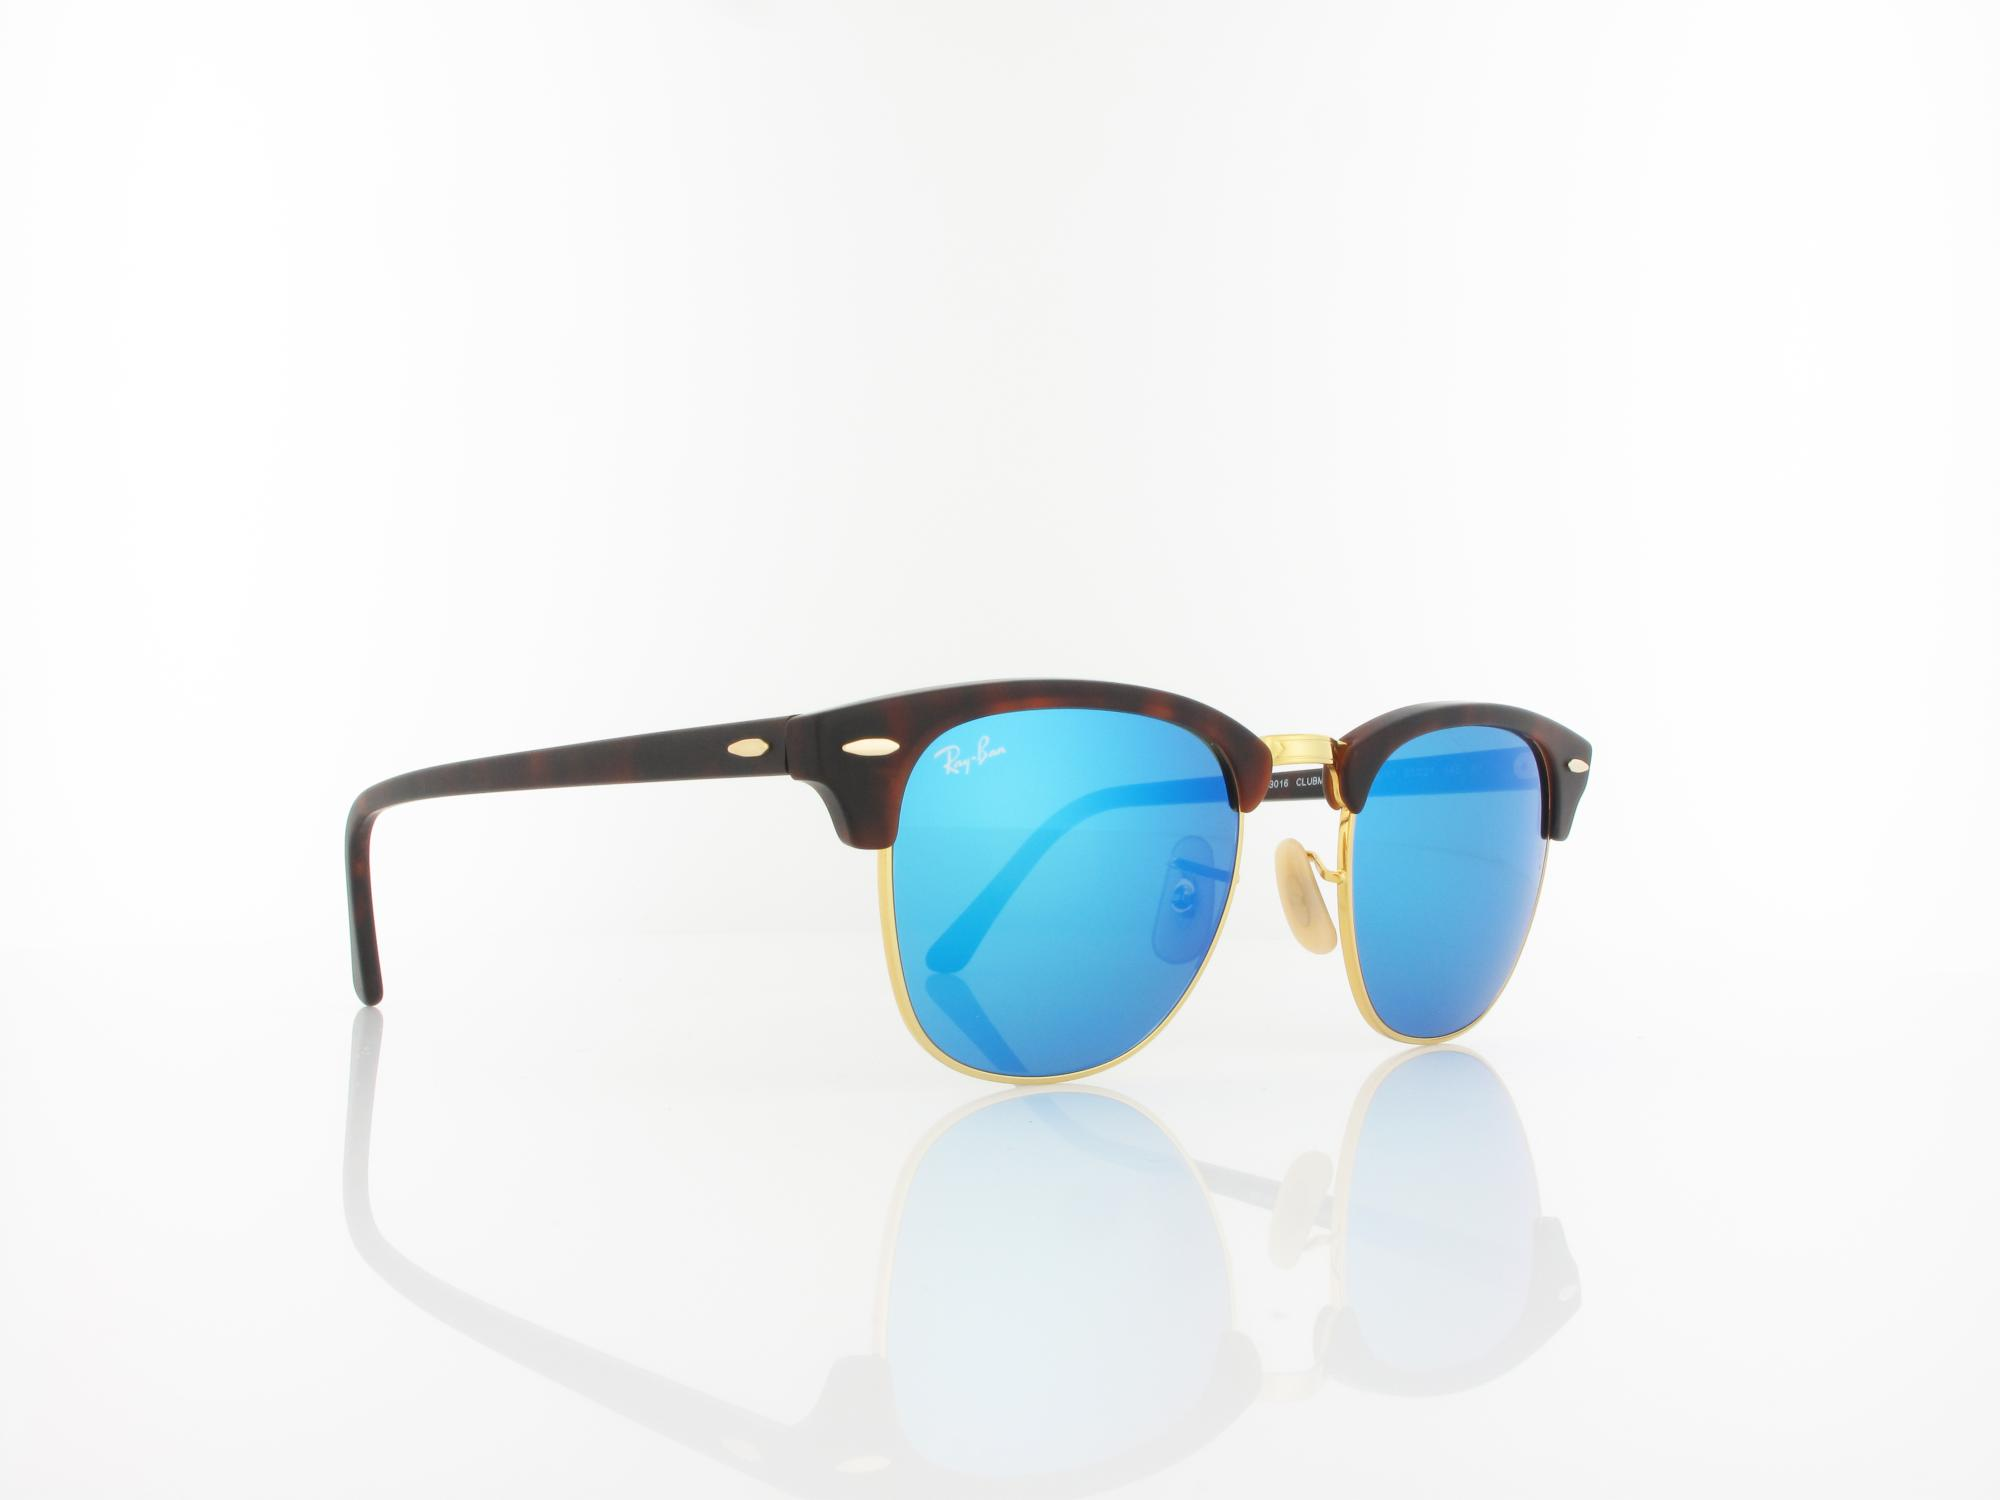 Ray Ban | Clubmaster RB3016 114517 51 | sand havana gold / grey mirror blue